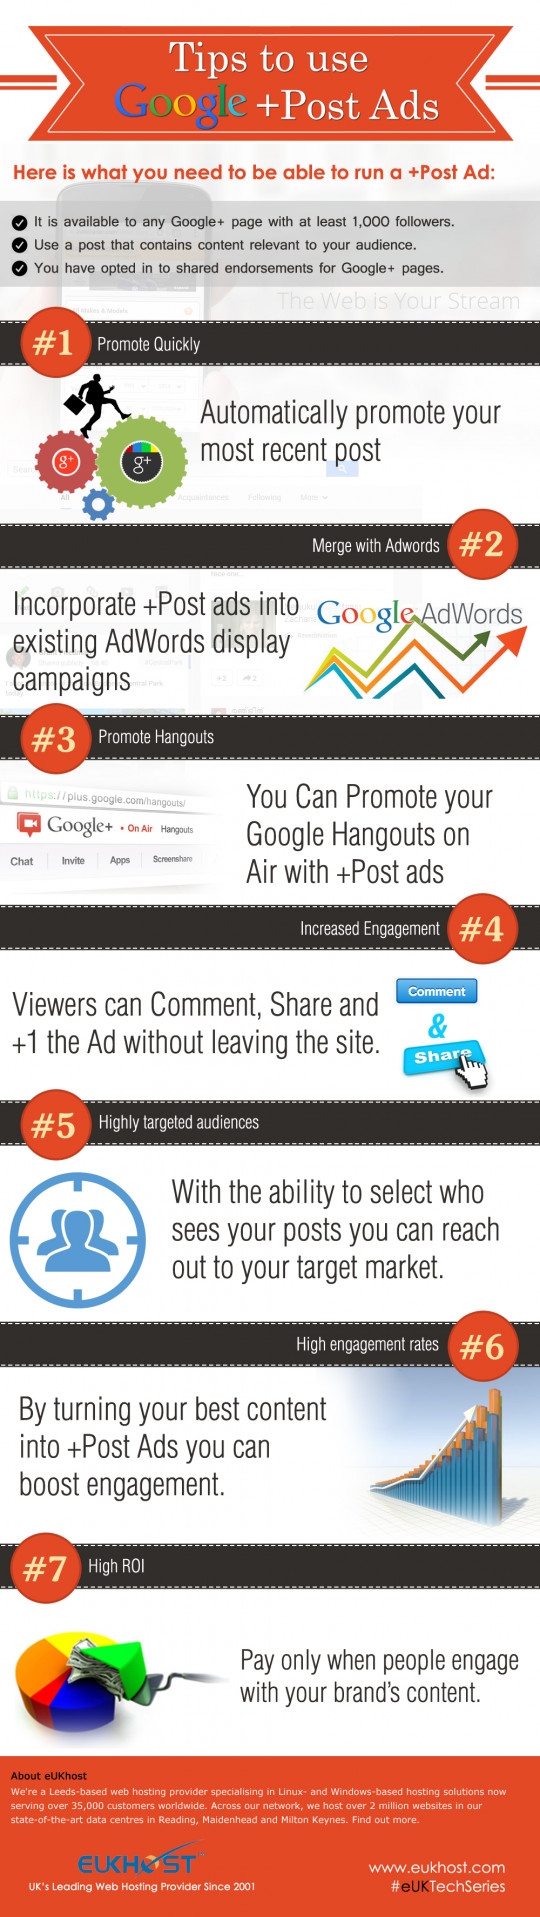 Tips to Use Google+ Post Ads